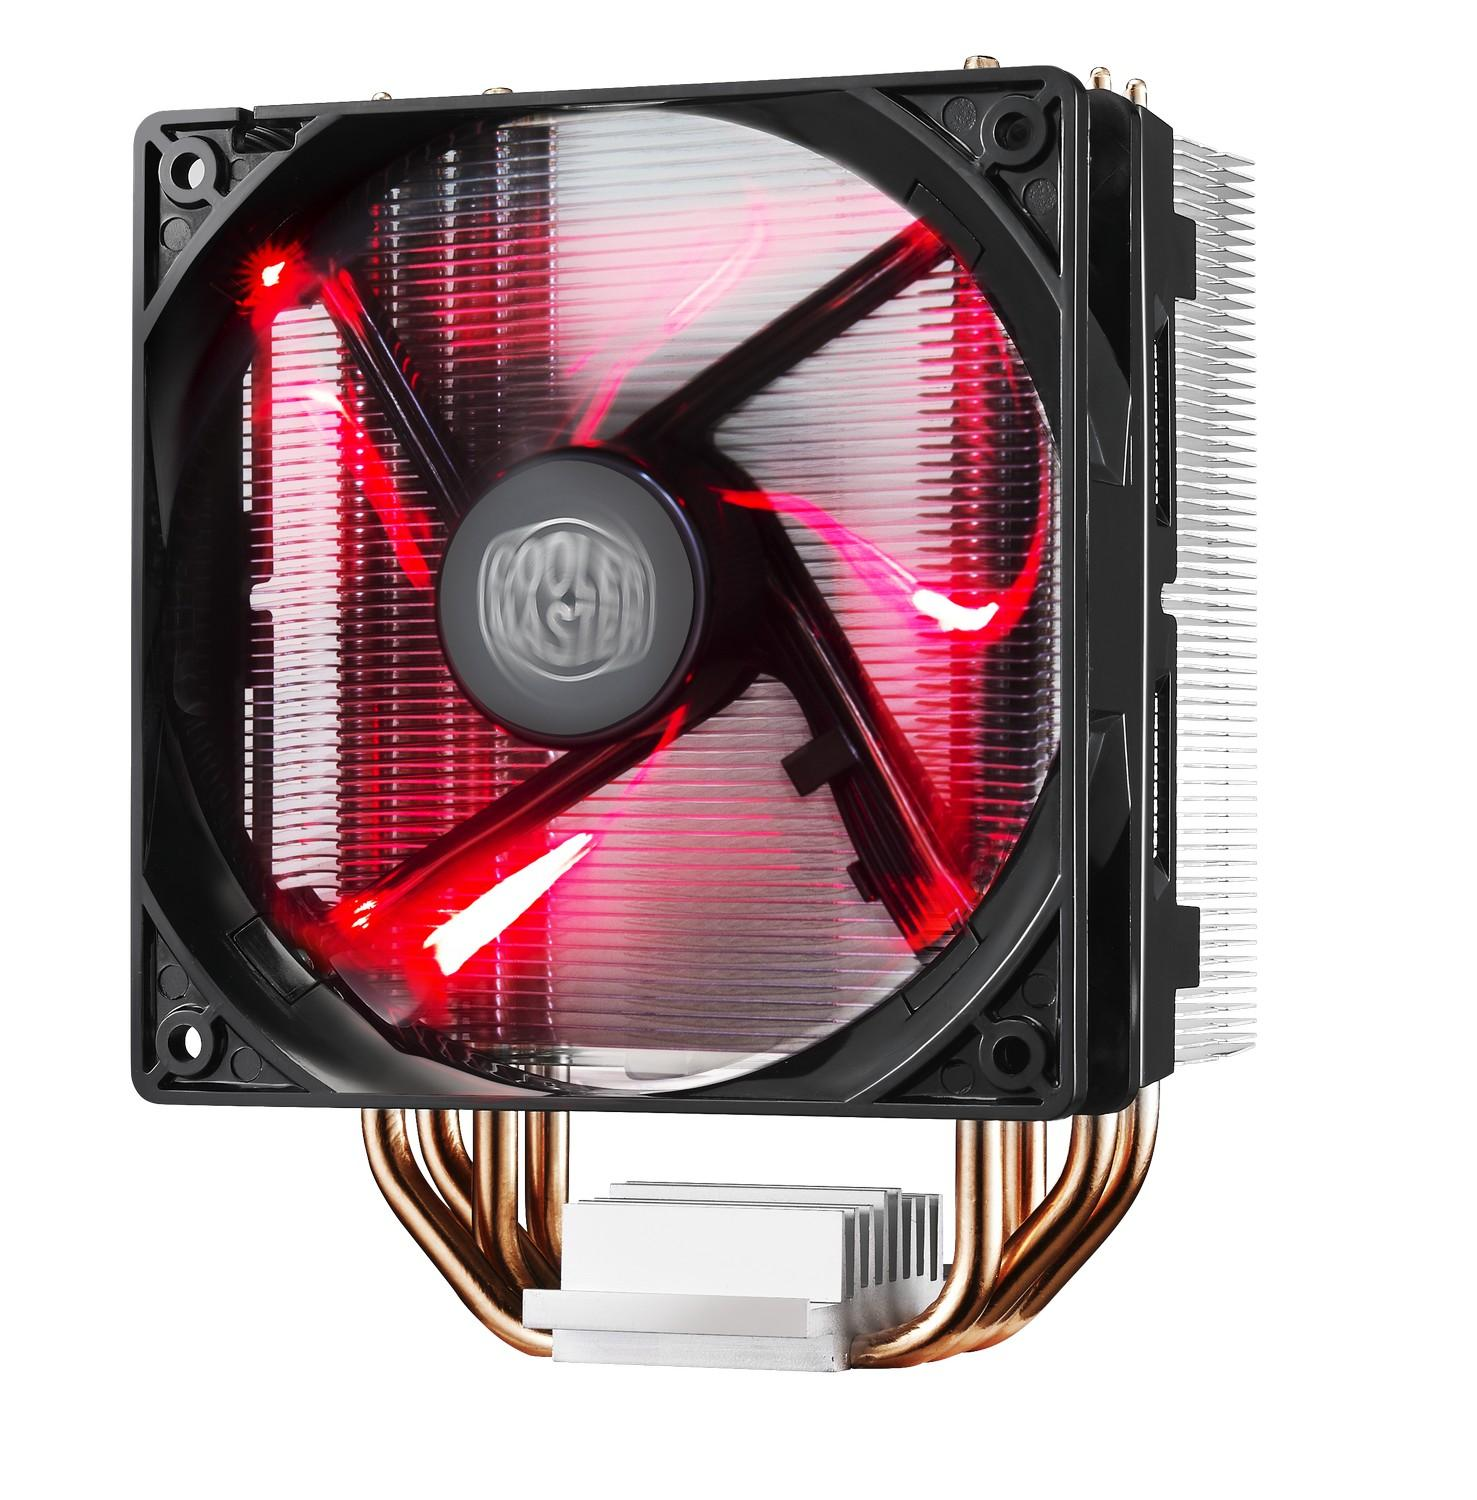 Охладител за процесор Cooler Master Hyper 212 LED, AMD/INTEL